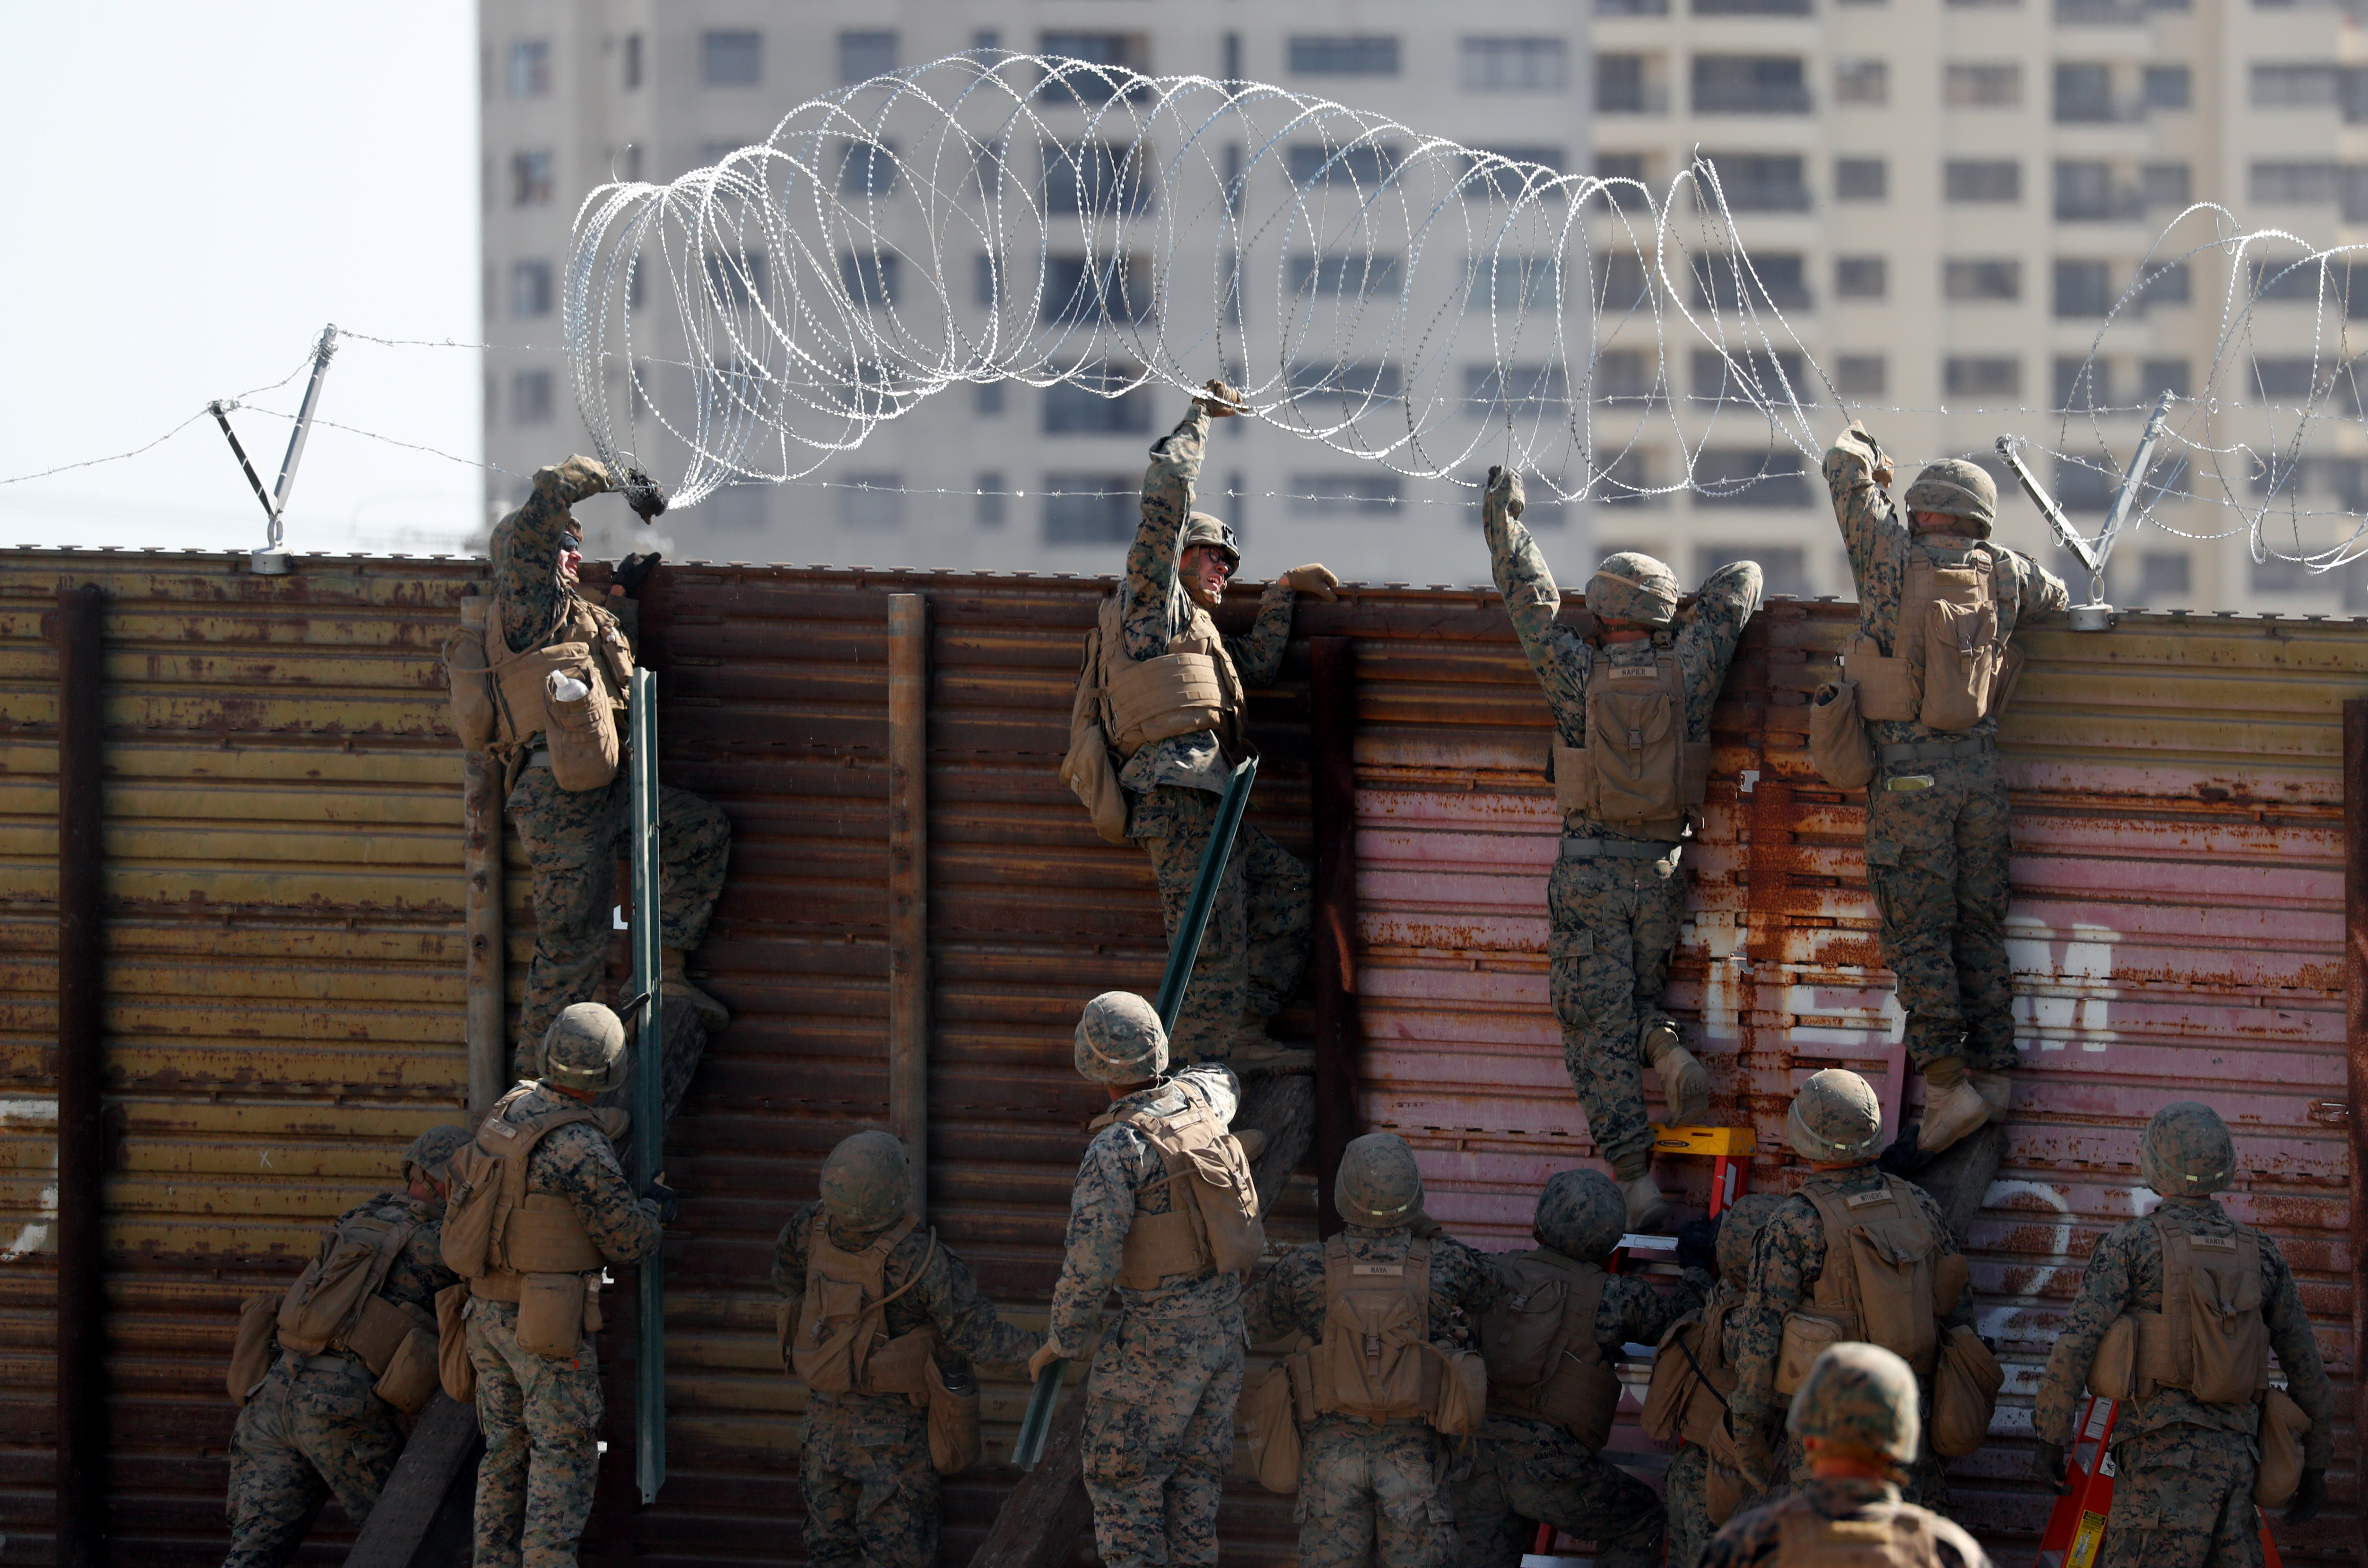 U.S. Marines instal concertina wire along the top of the primary border wall at the port of entry next to Tijuana in San Ysidro